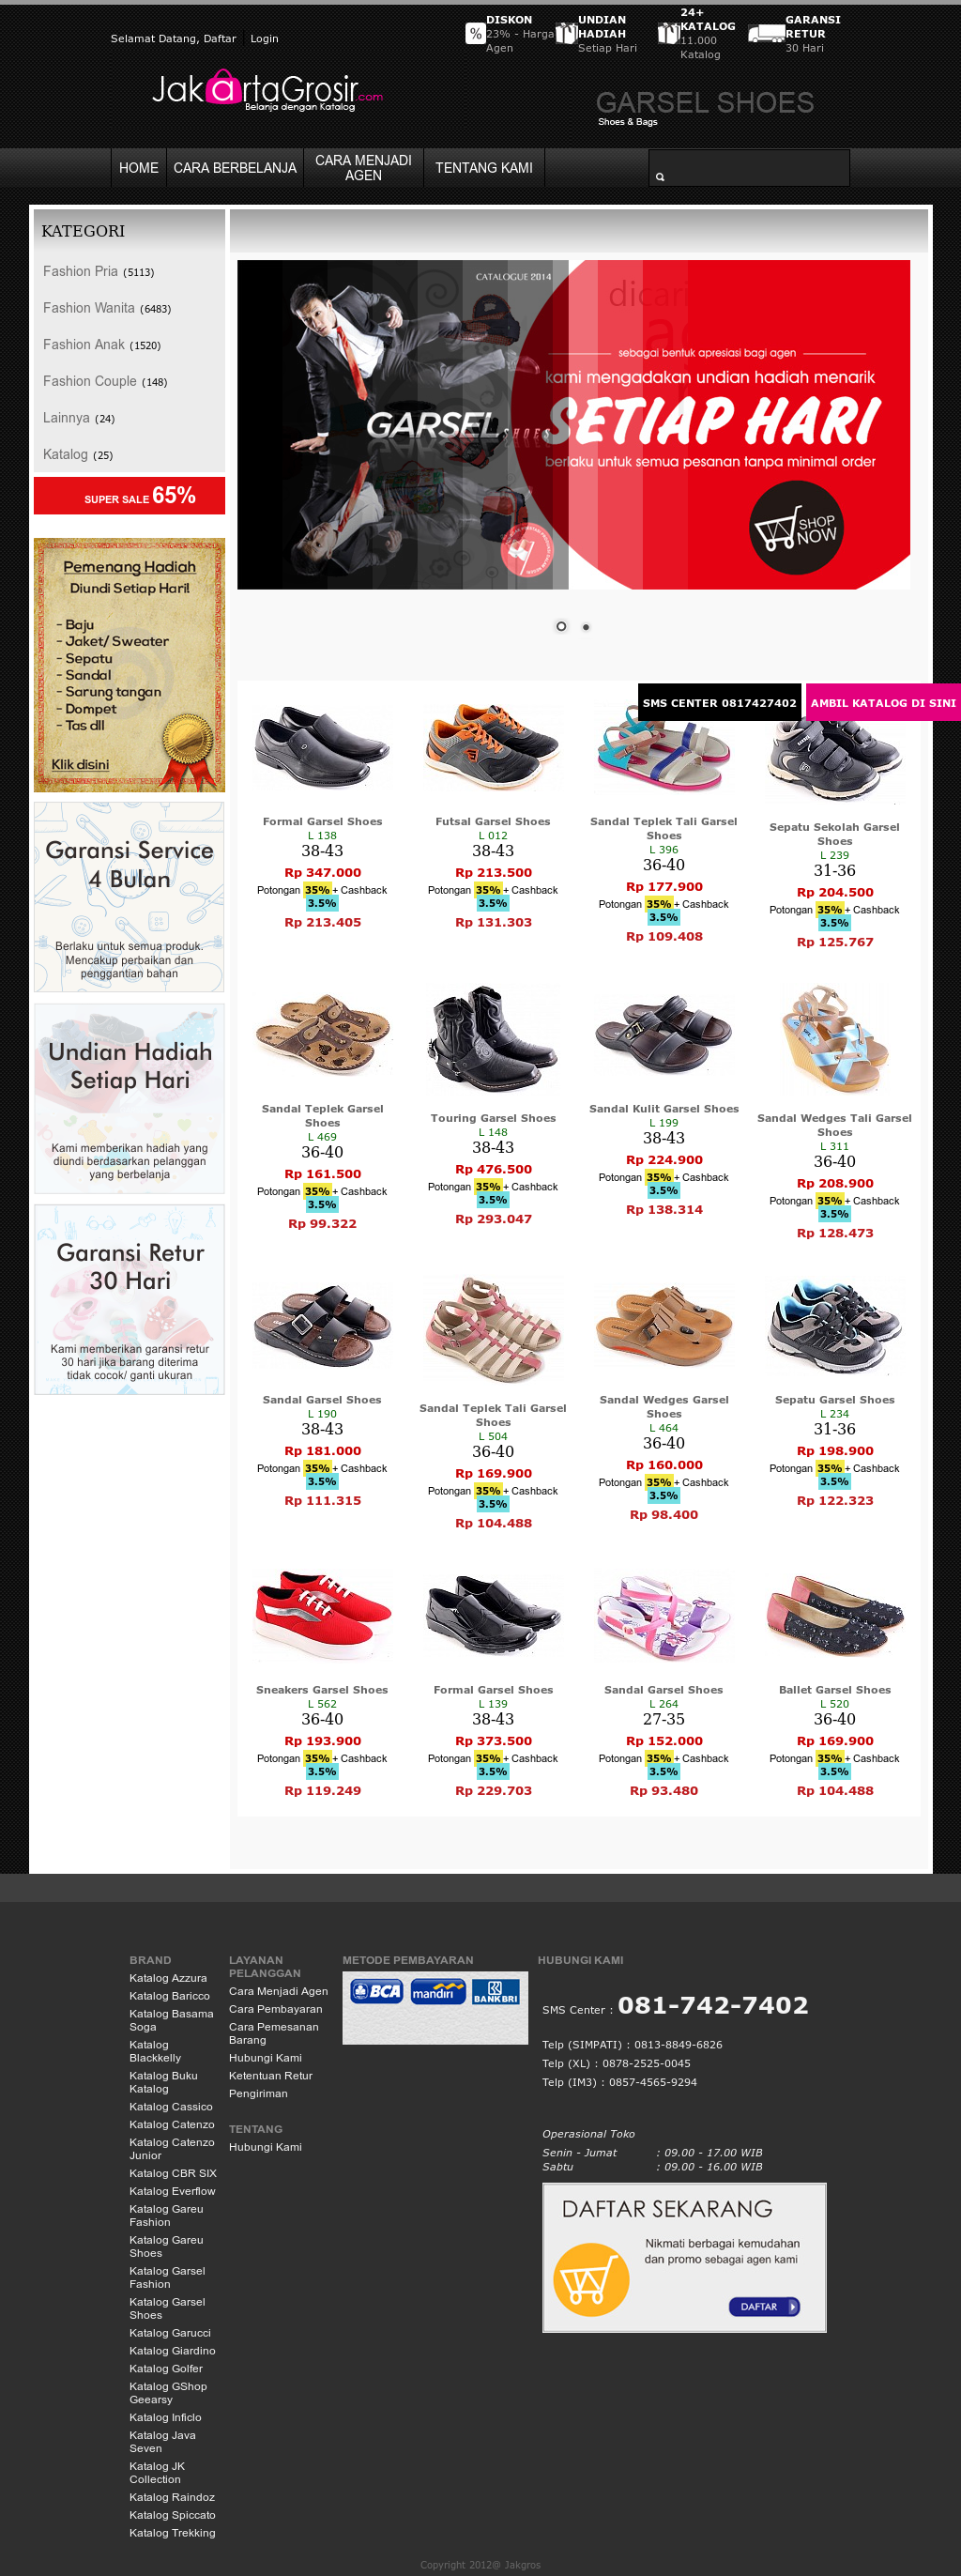 Garsel Shoes Competitors Revenue And Employees Owler Company Profile 009 Tas Anak Website History